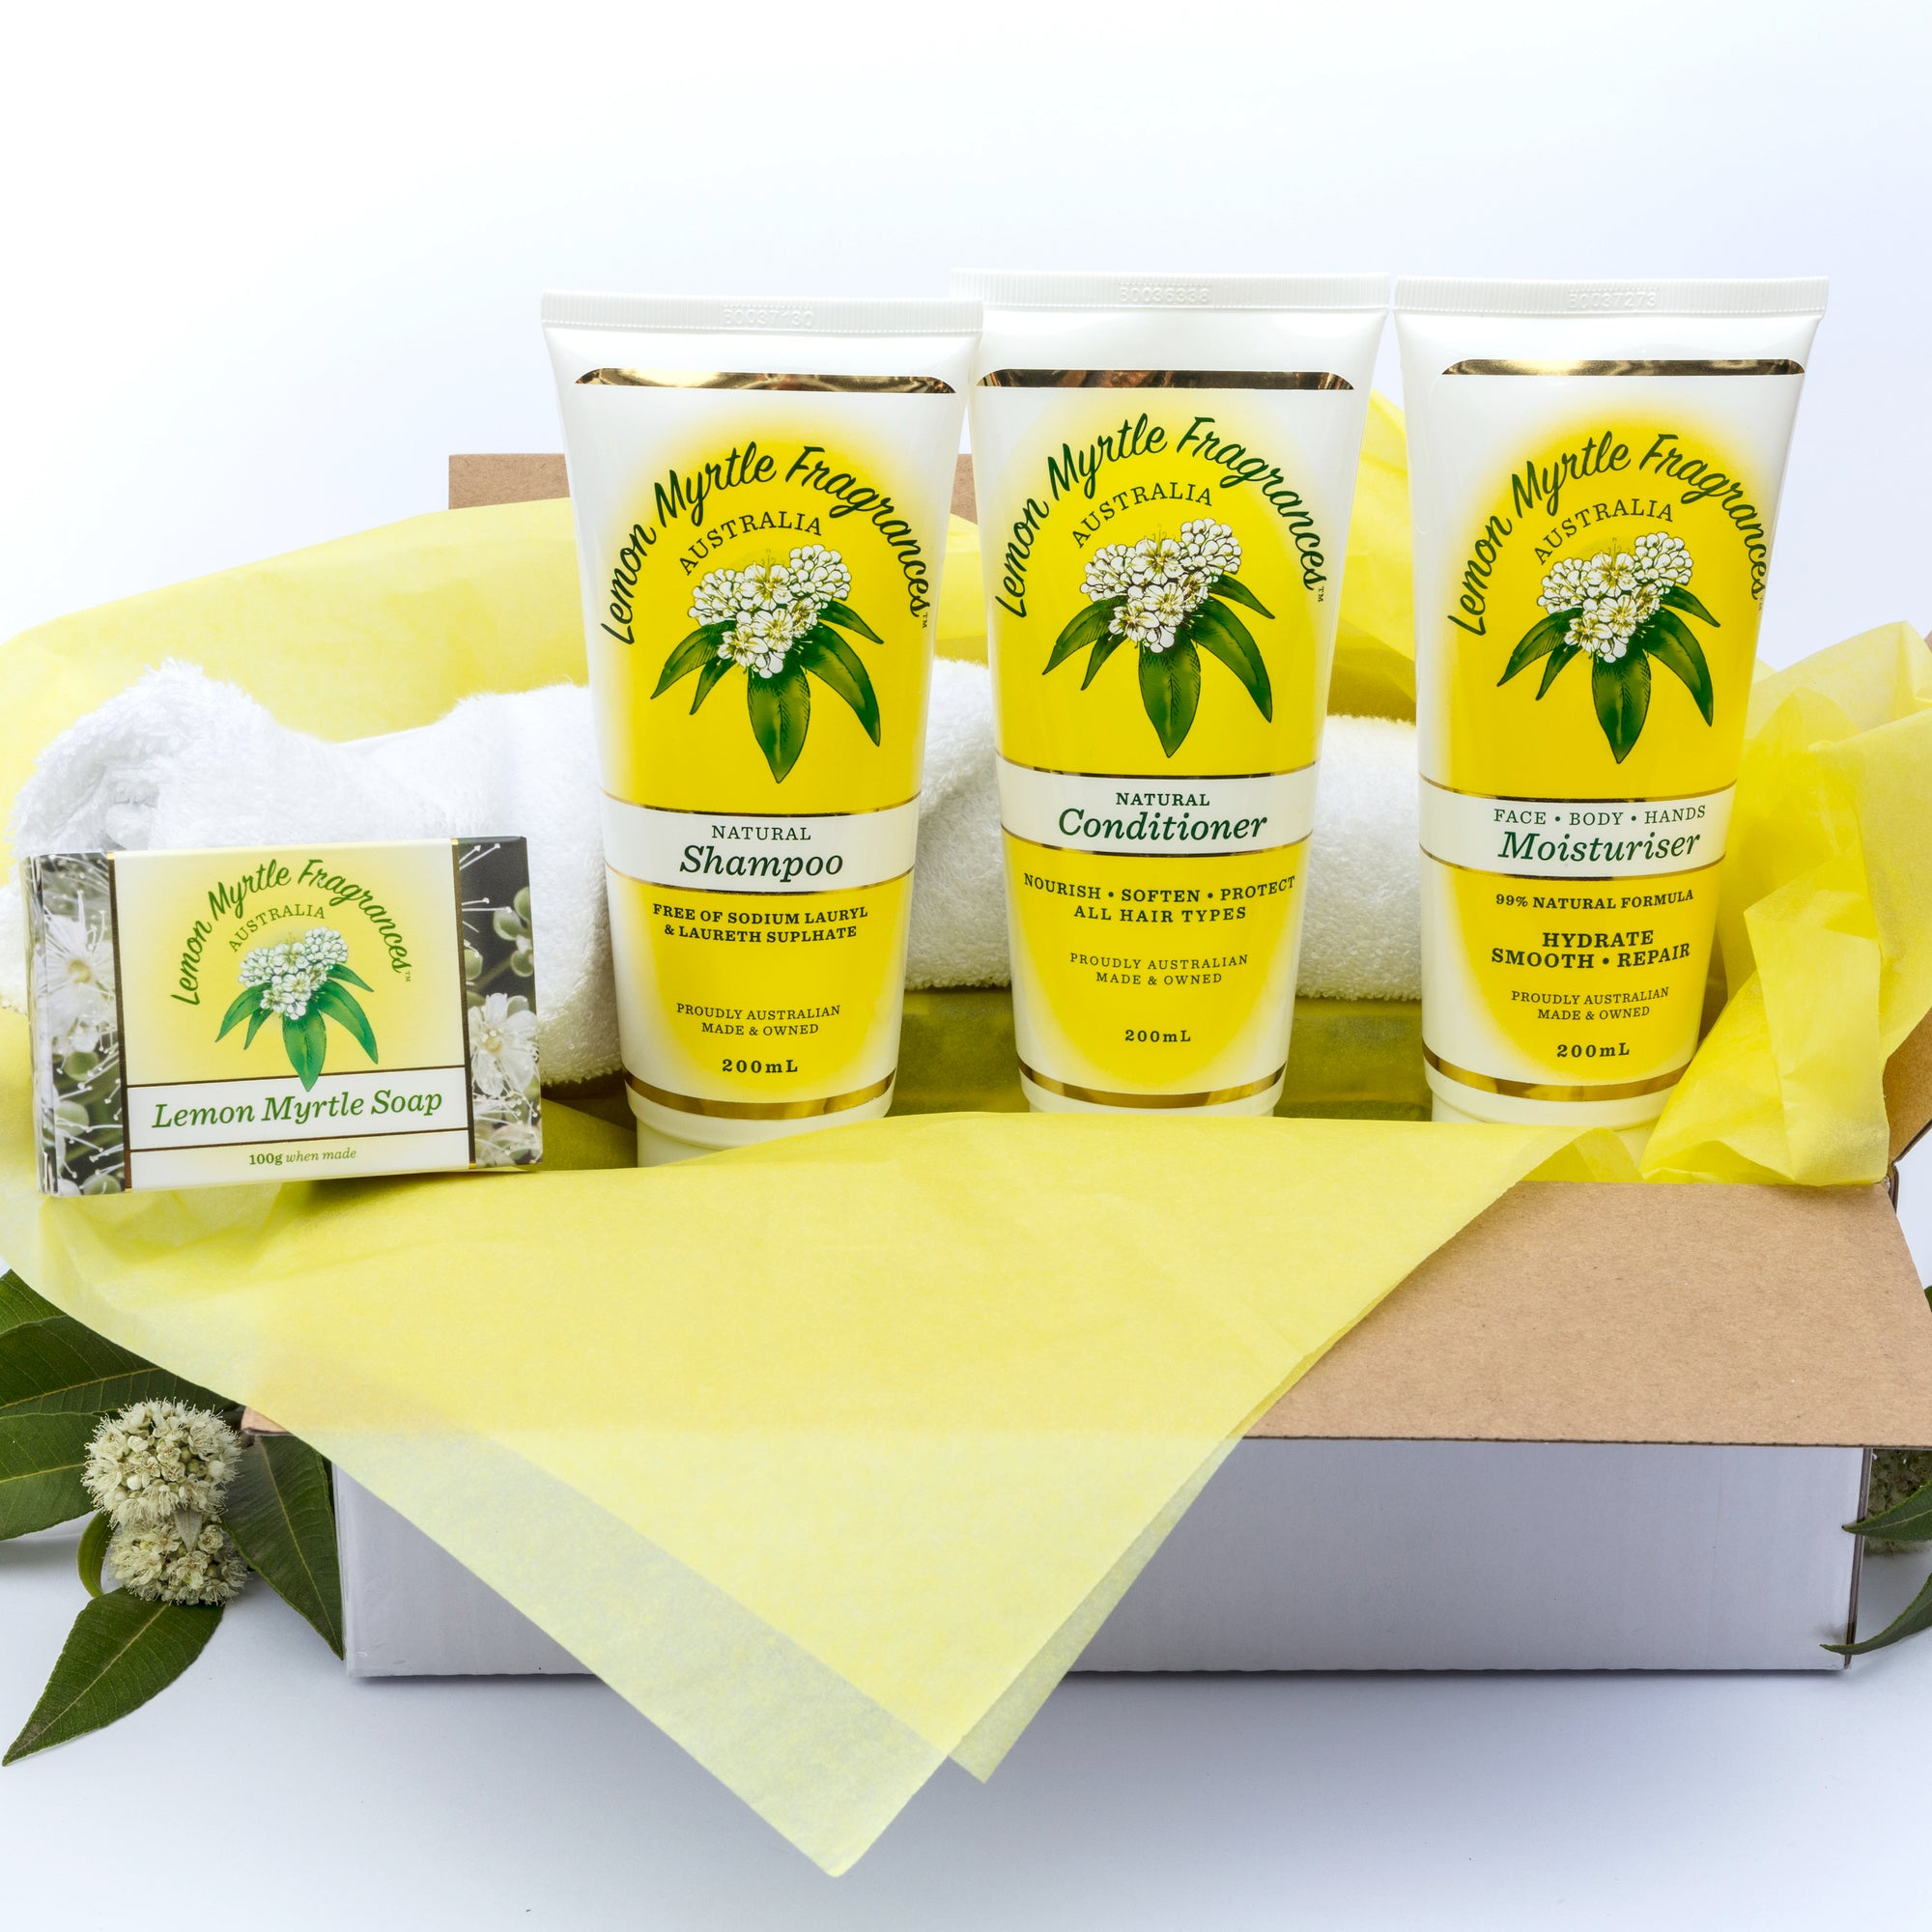 Natural Lemon Myrtle Shower and Moisturise Gift Box